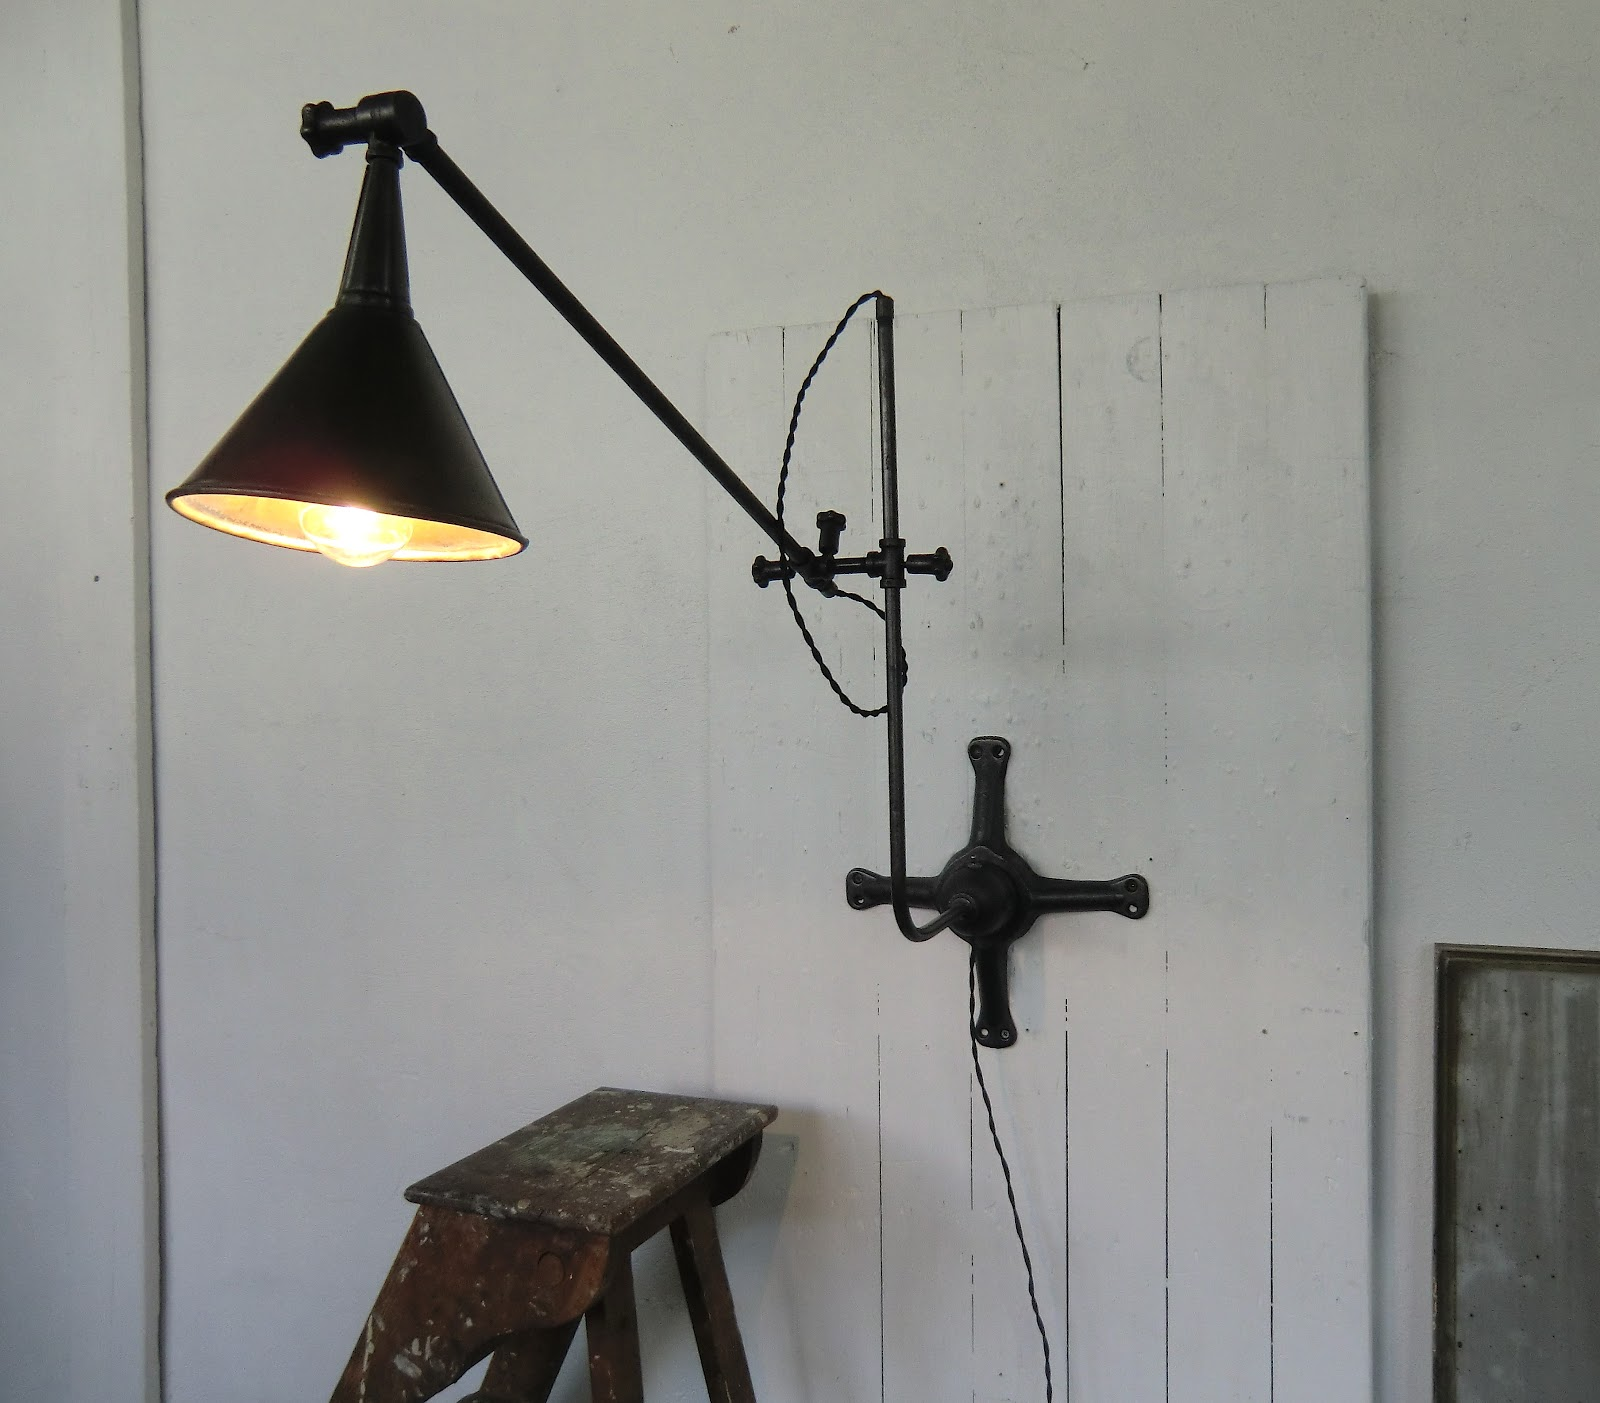 Wo and w collection lampe murale industrielle bras articul orientable vintage design - Lampe murale industrielle ...